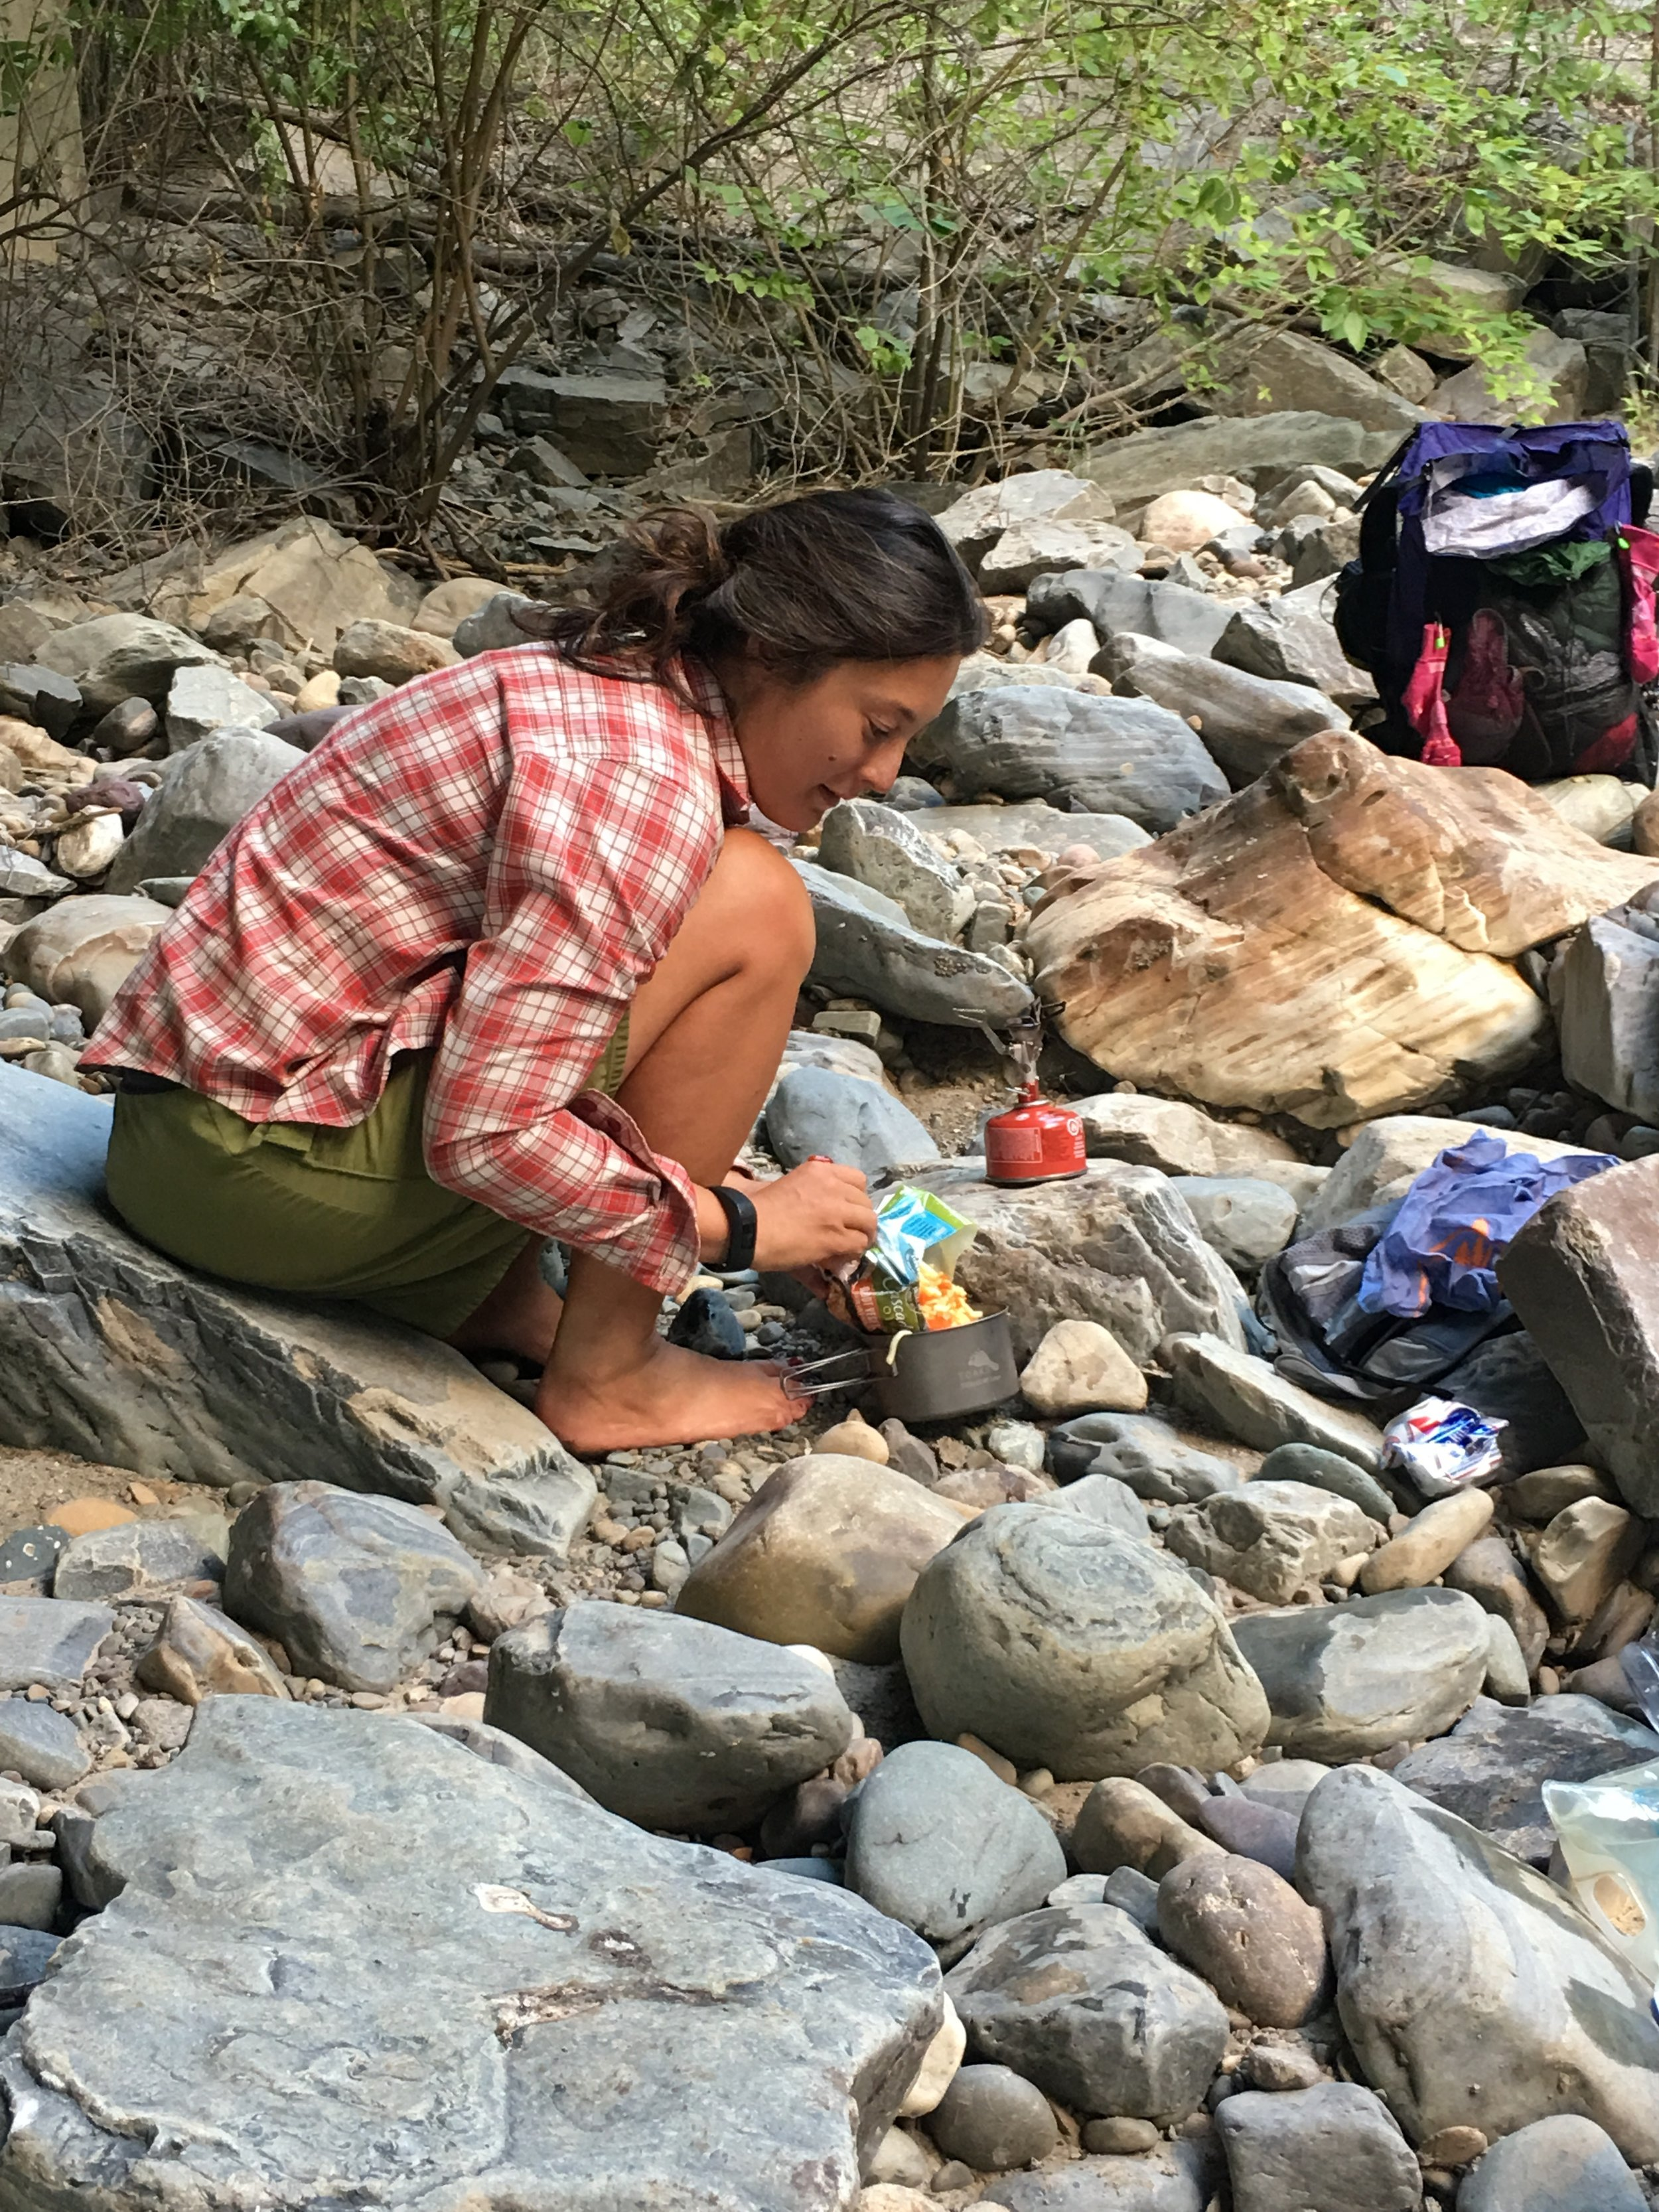 The author using the MSR Pocket Rocket on the 1,200-mile Pacific Northwest Trail backpacking trip from Montana to the Pacific Ocean.  Photo courtesy Naomi Hudetz.